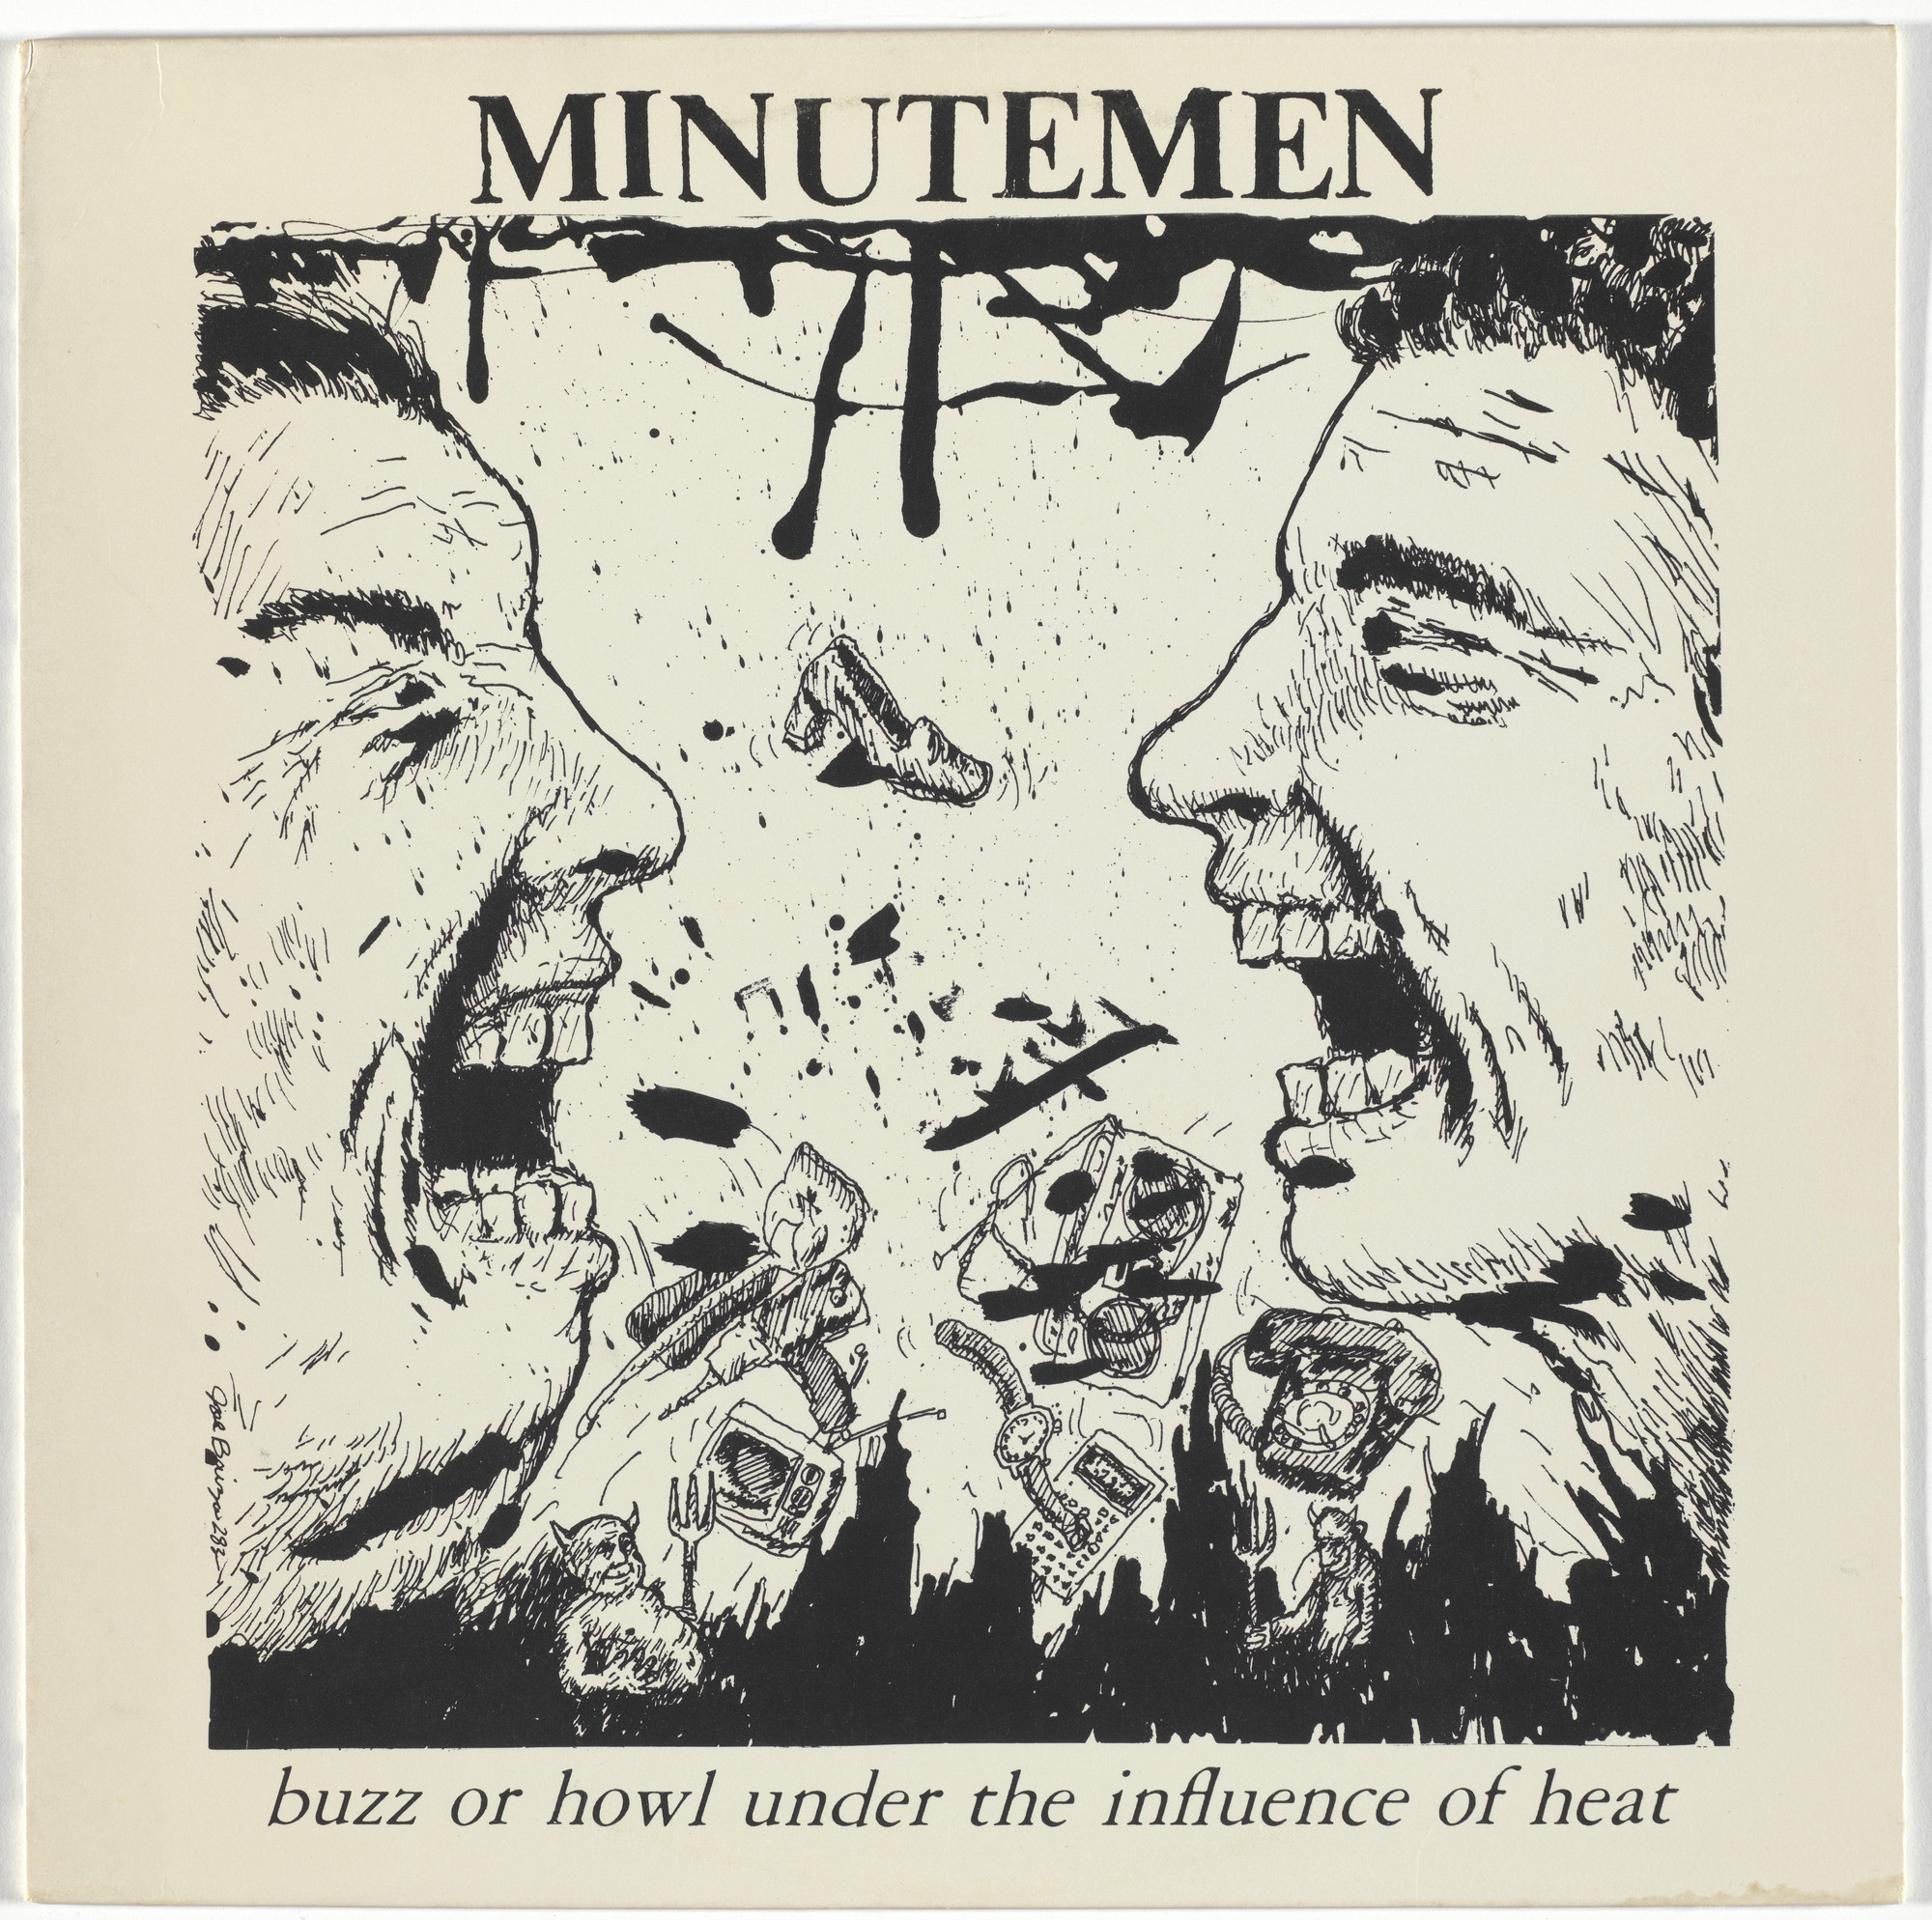 Minutemen, Raymond Pettibon. Buzz or Howl Under the Influence of Heat. 1983